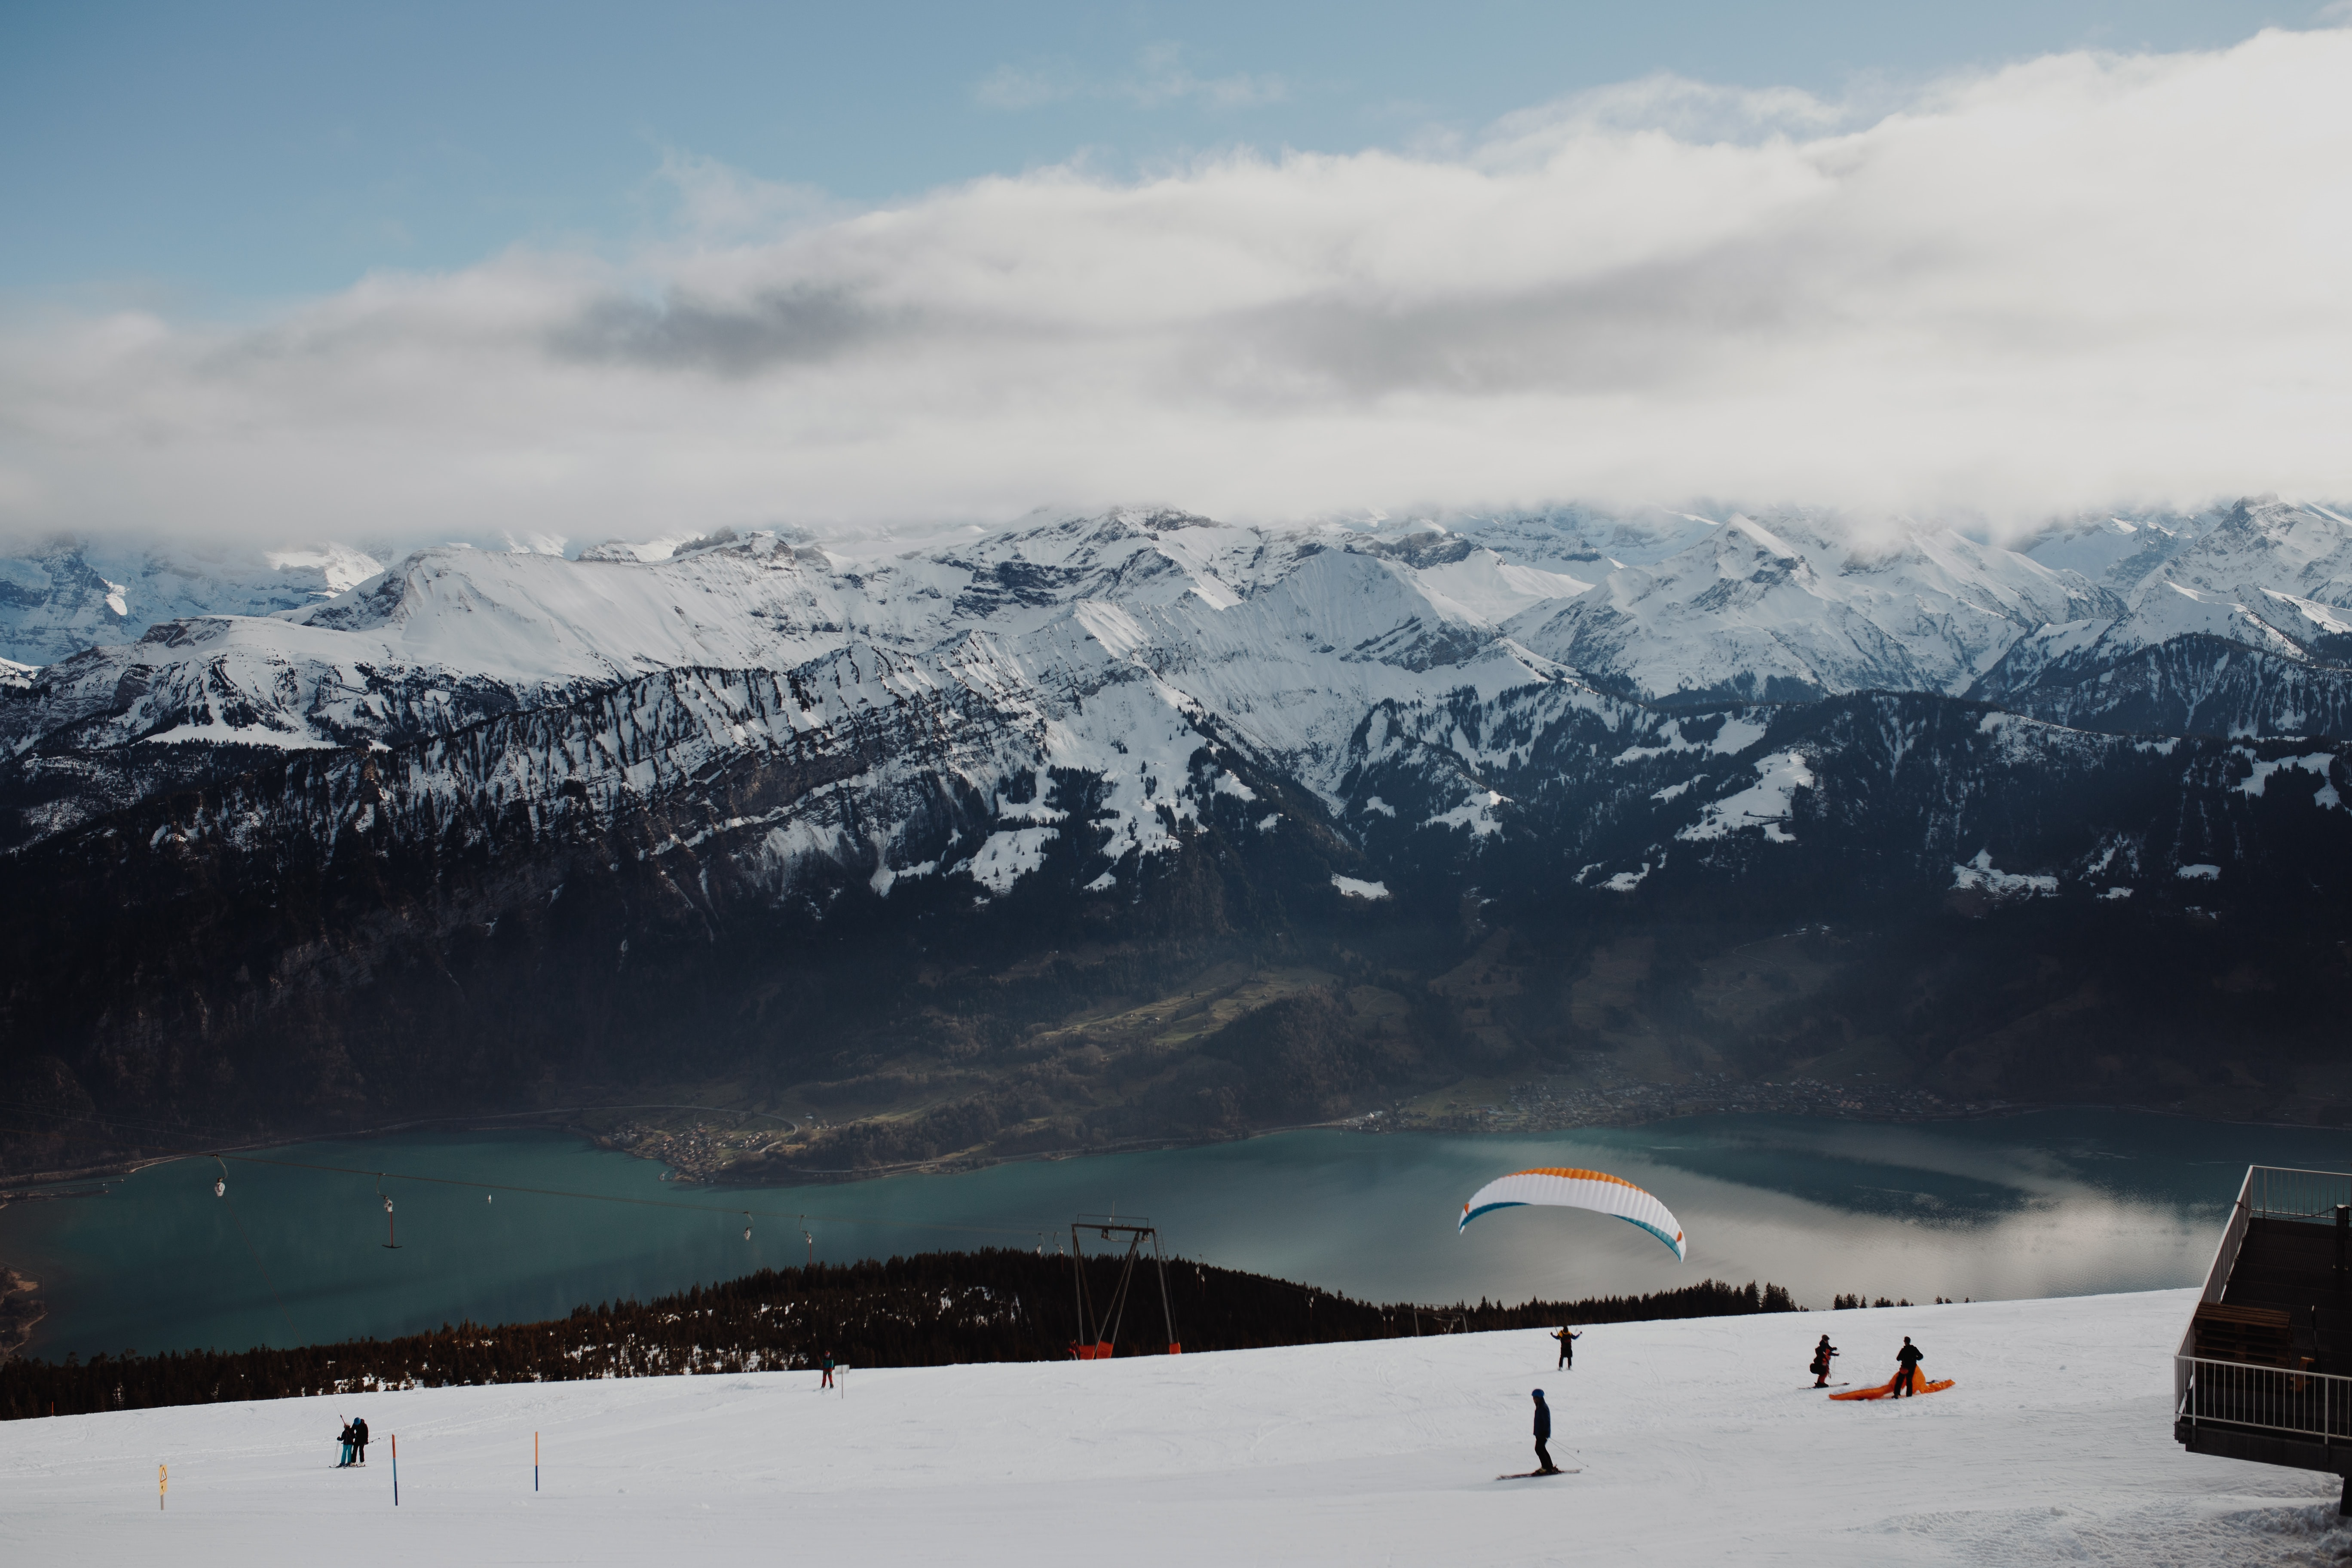 people skiing on snowy mountain slope